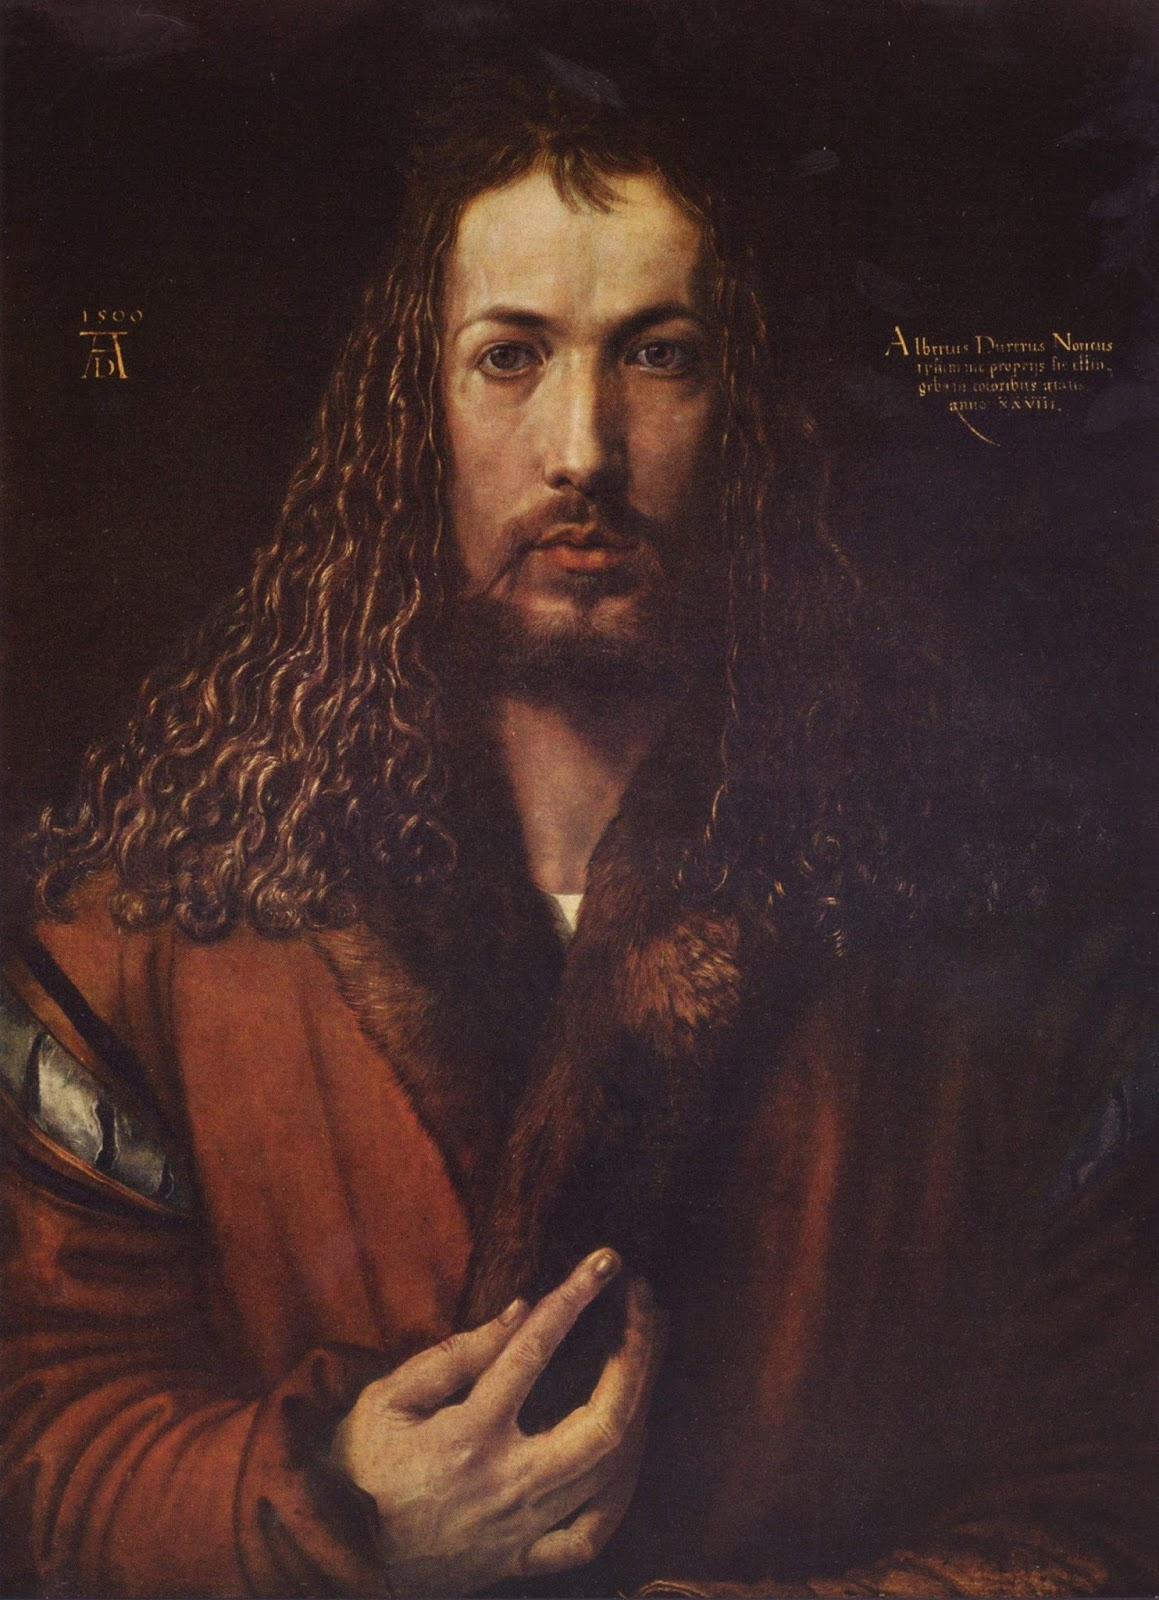 a biography of the artist albrecht durer Not only was this artist a painter, he was also doing a lot of works such as printmaking and engraving he was even a theorist and mathematician he was none other than albrecht durer (1471-1528) albrecht dürer, or duerer, was a painter, mathematician, theorist, printmaker and engraver originating from nuremburg.